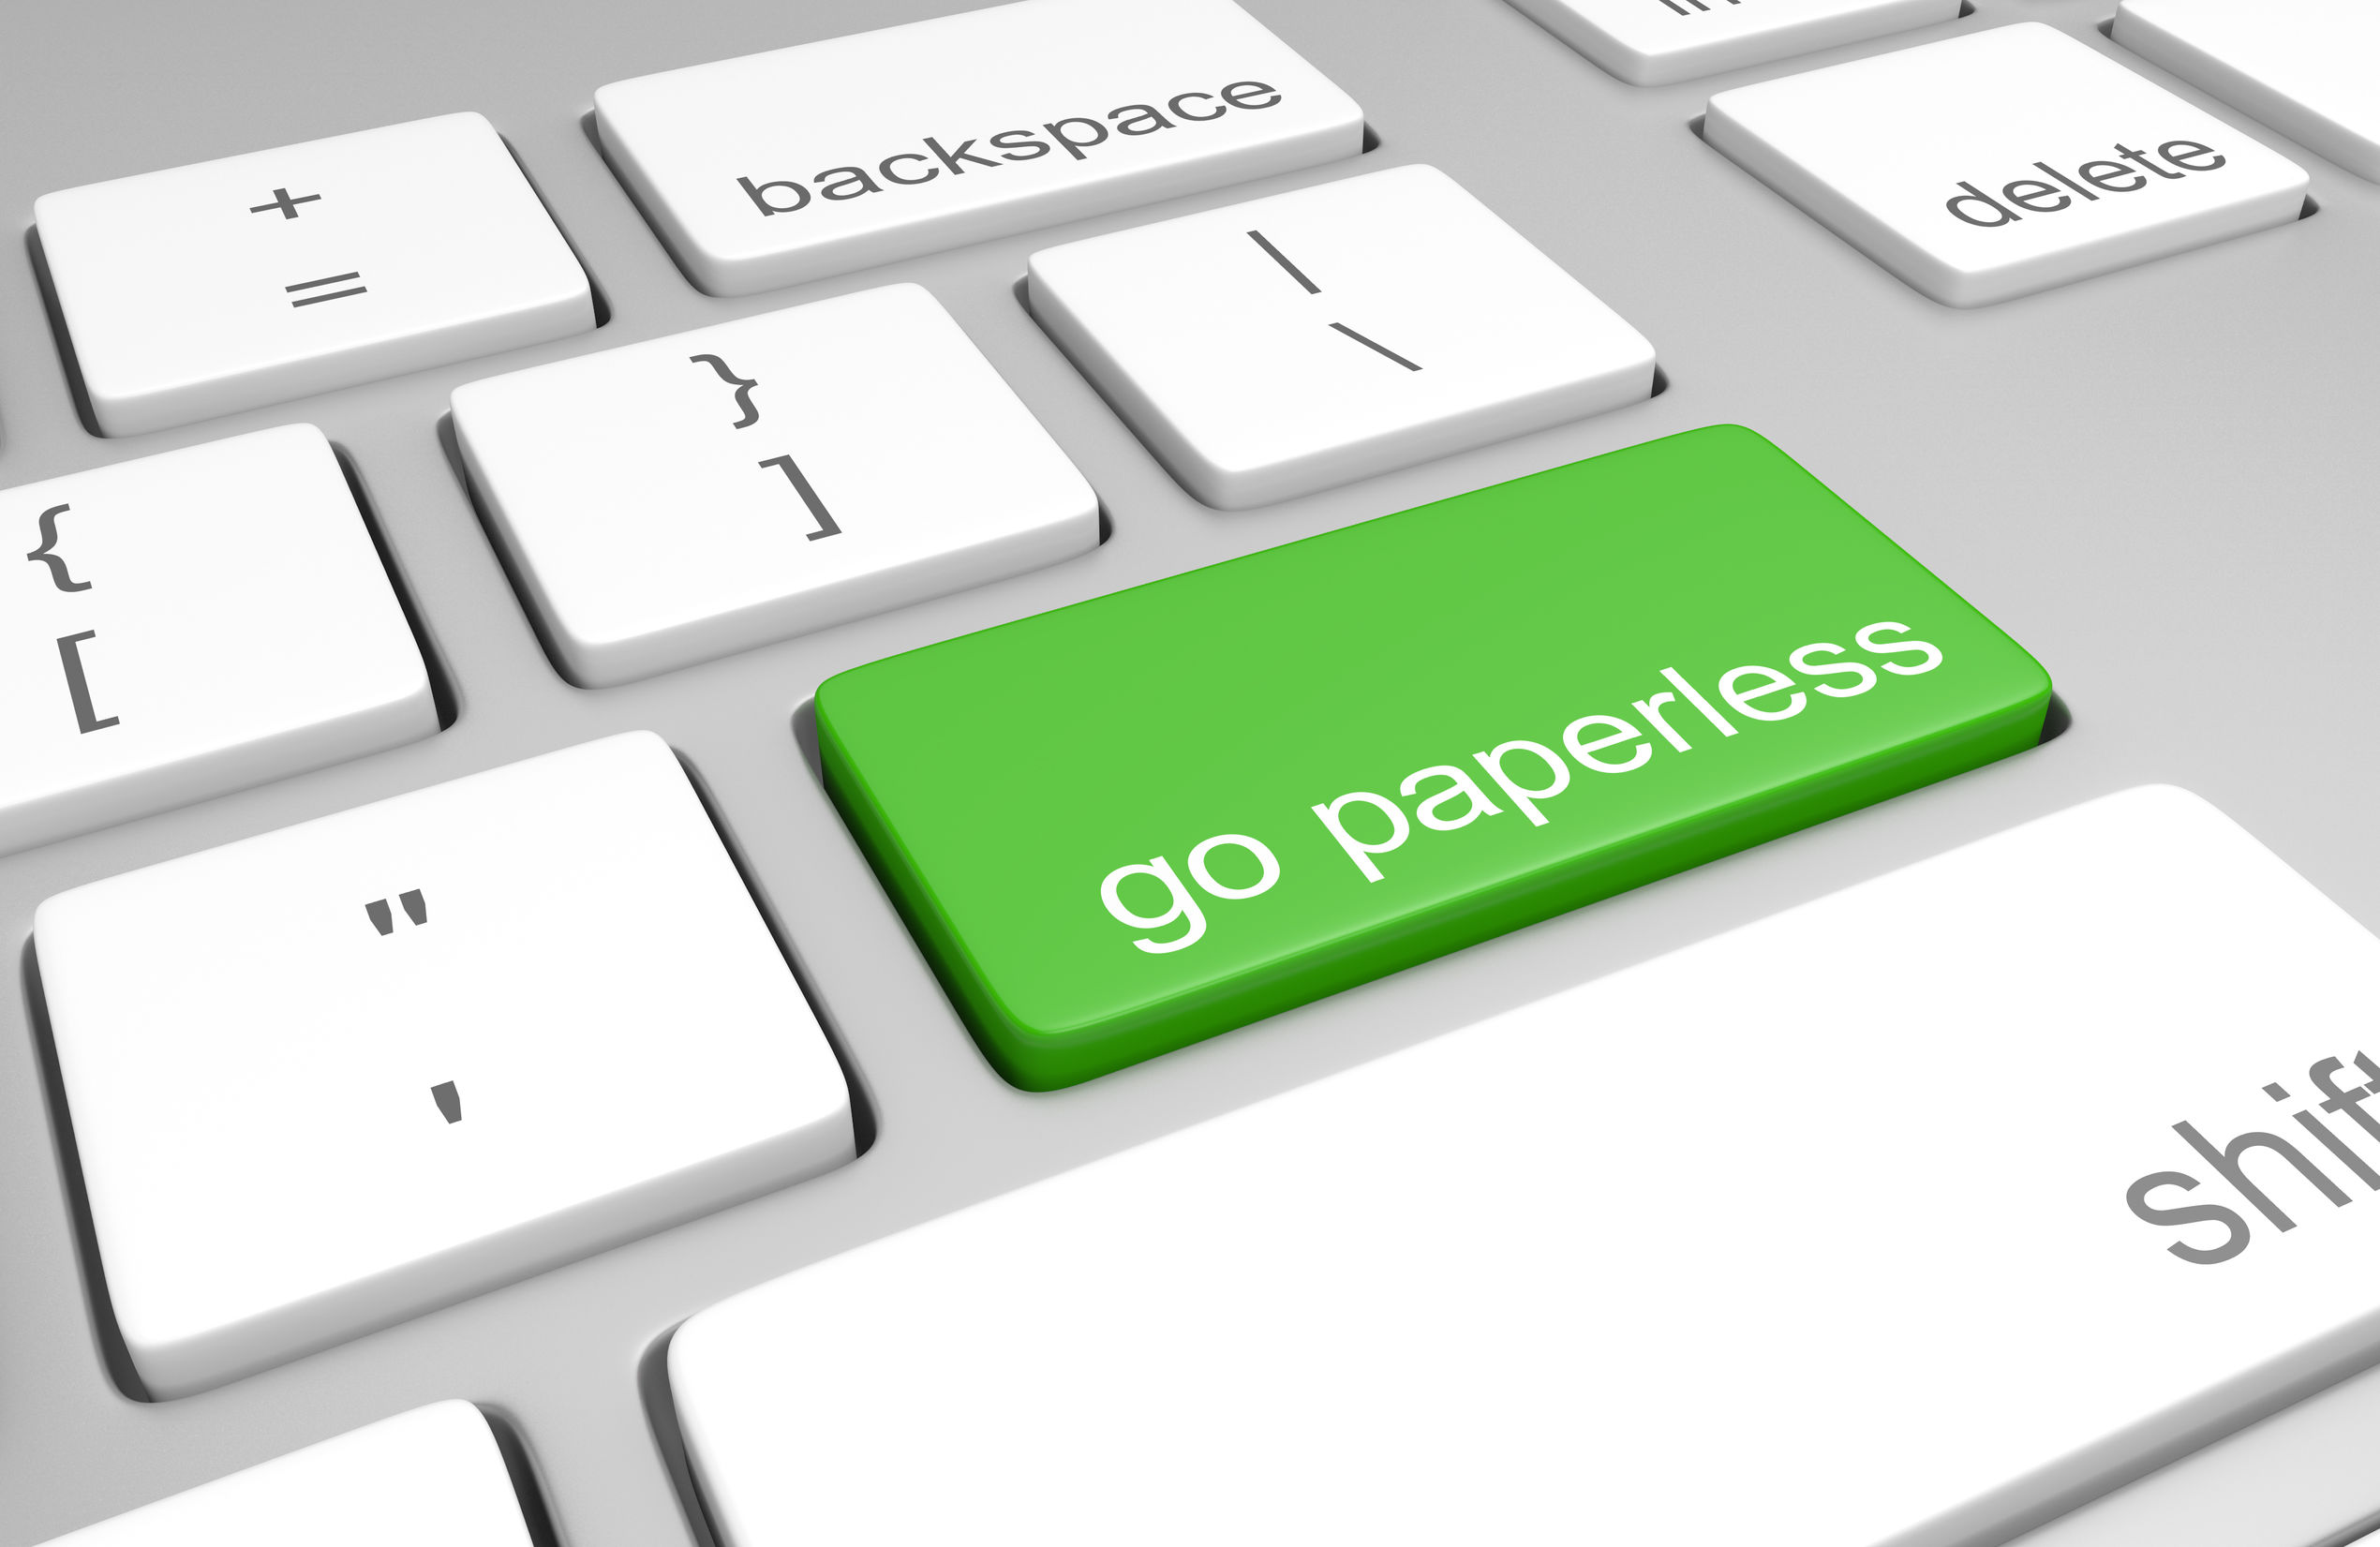 go paperless - concept